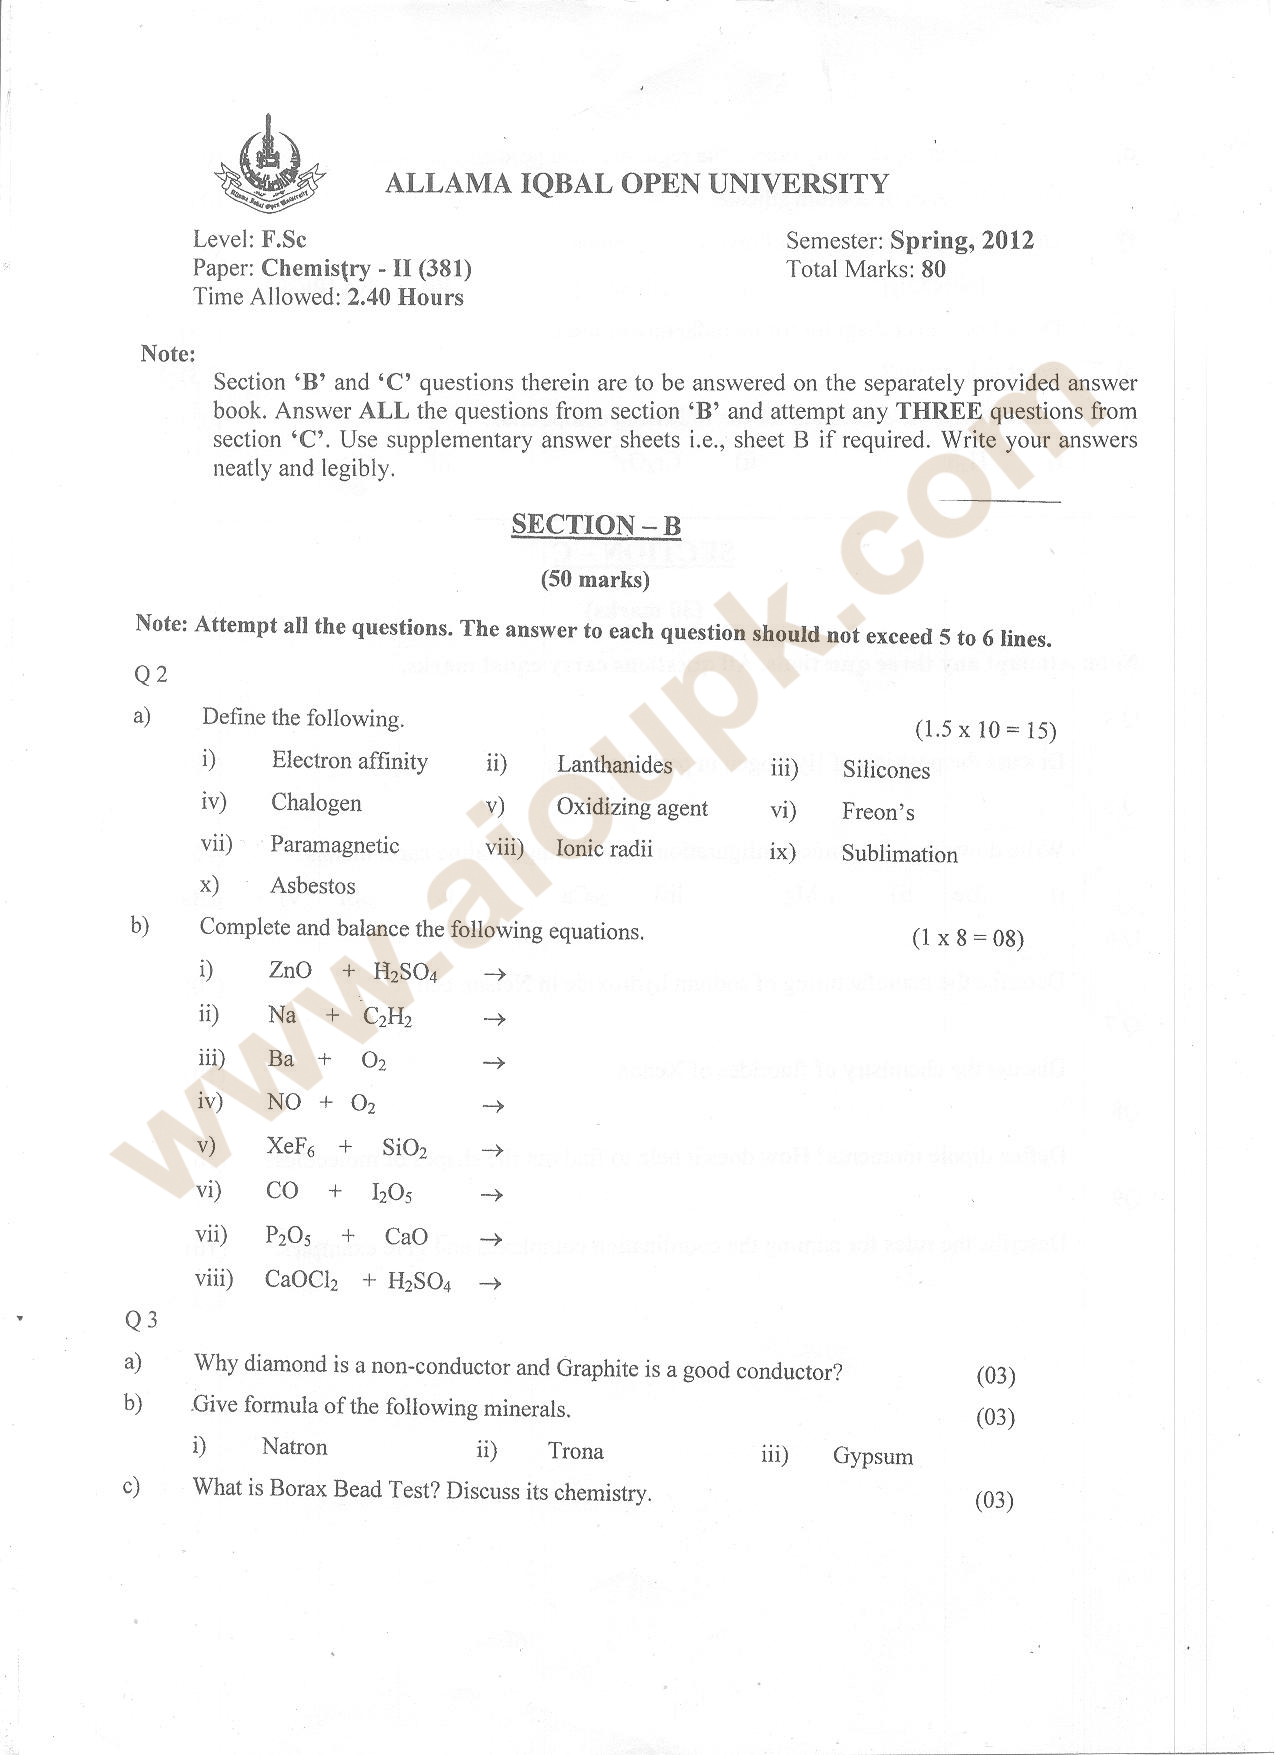 chemistry intermediate 2 past papers Sqa pastpapers  for chemistry 20 papers found for chemistry, displaying all  papers page 1  2015, intermediate 2, question paper, pdf (14mb) select to.